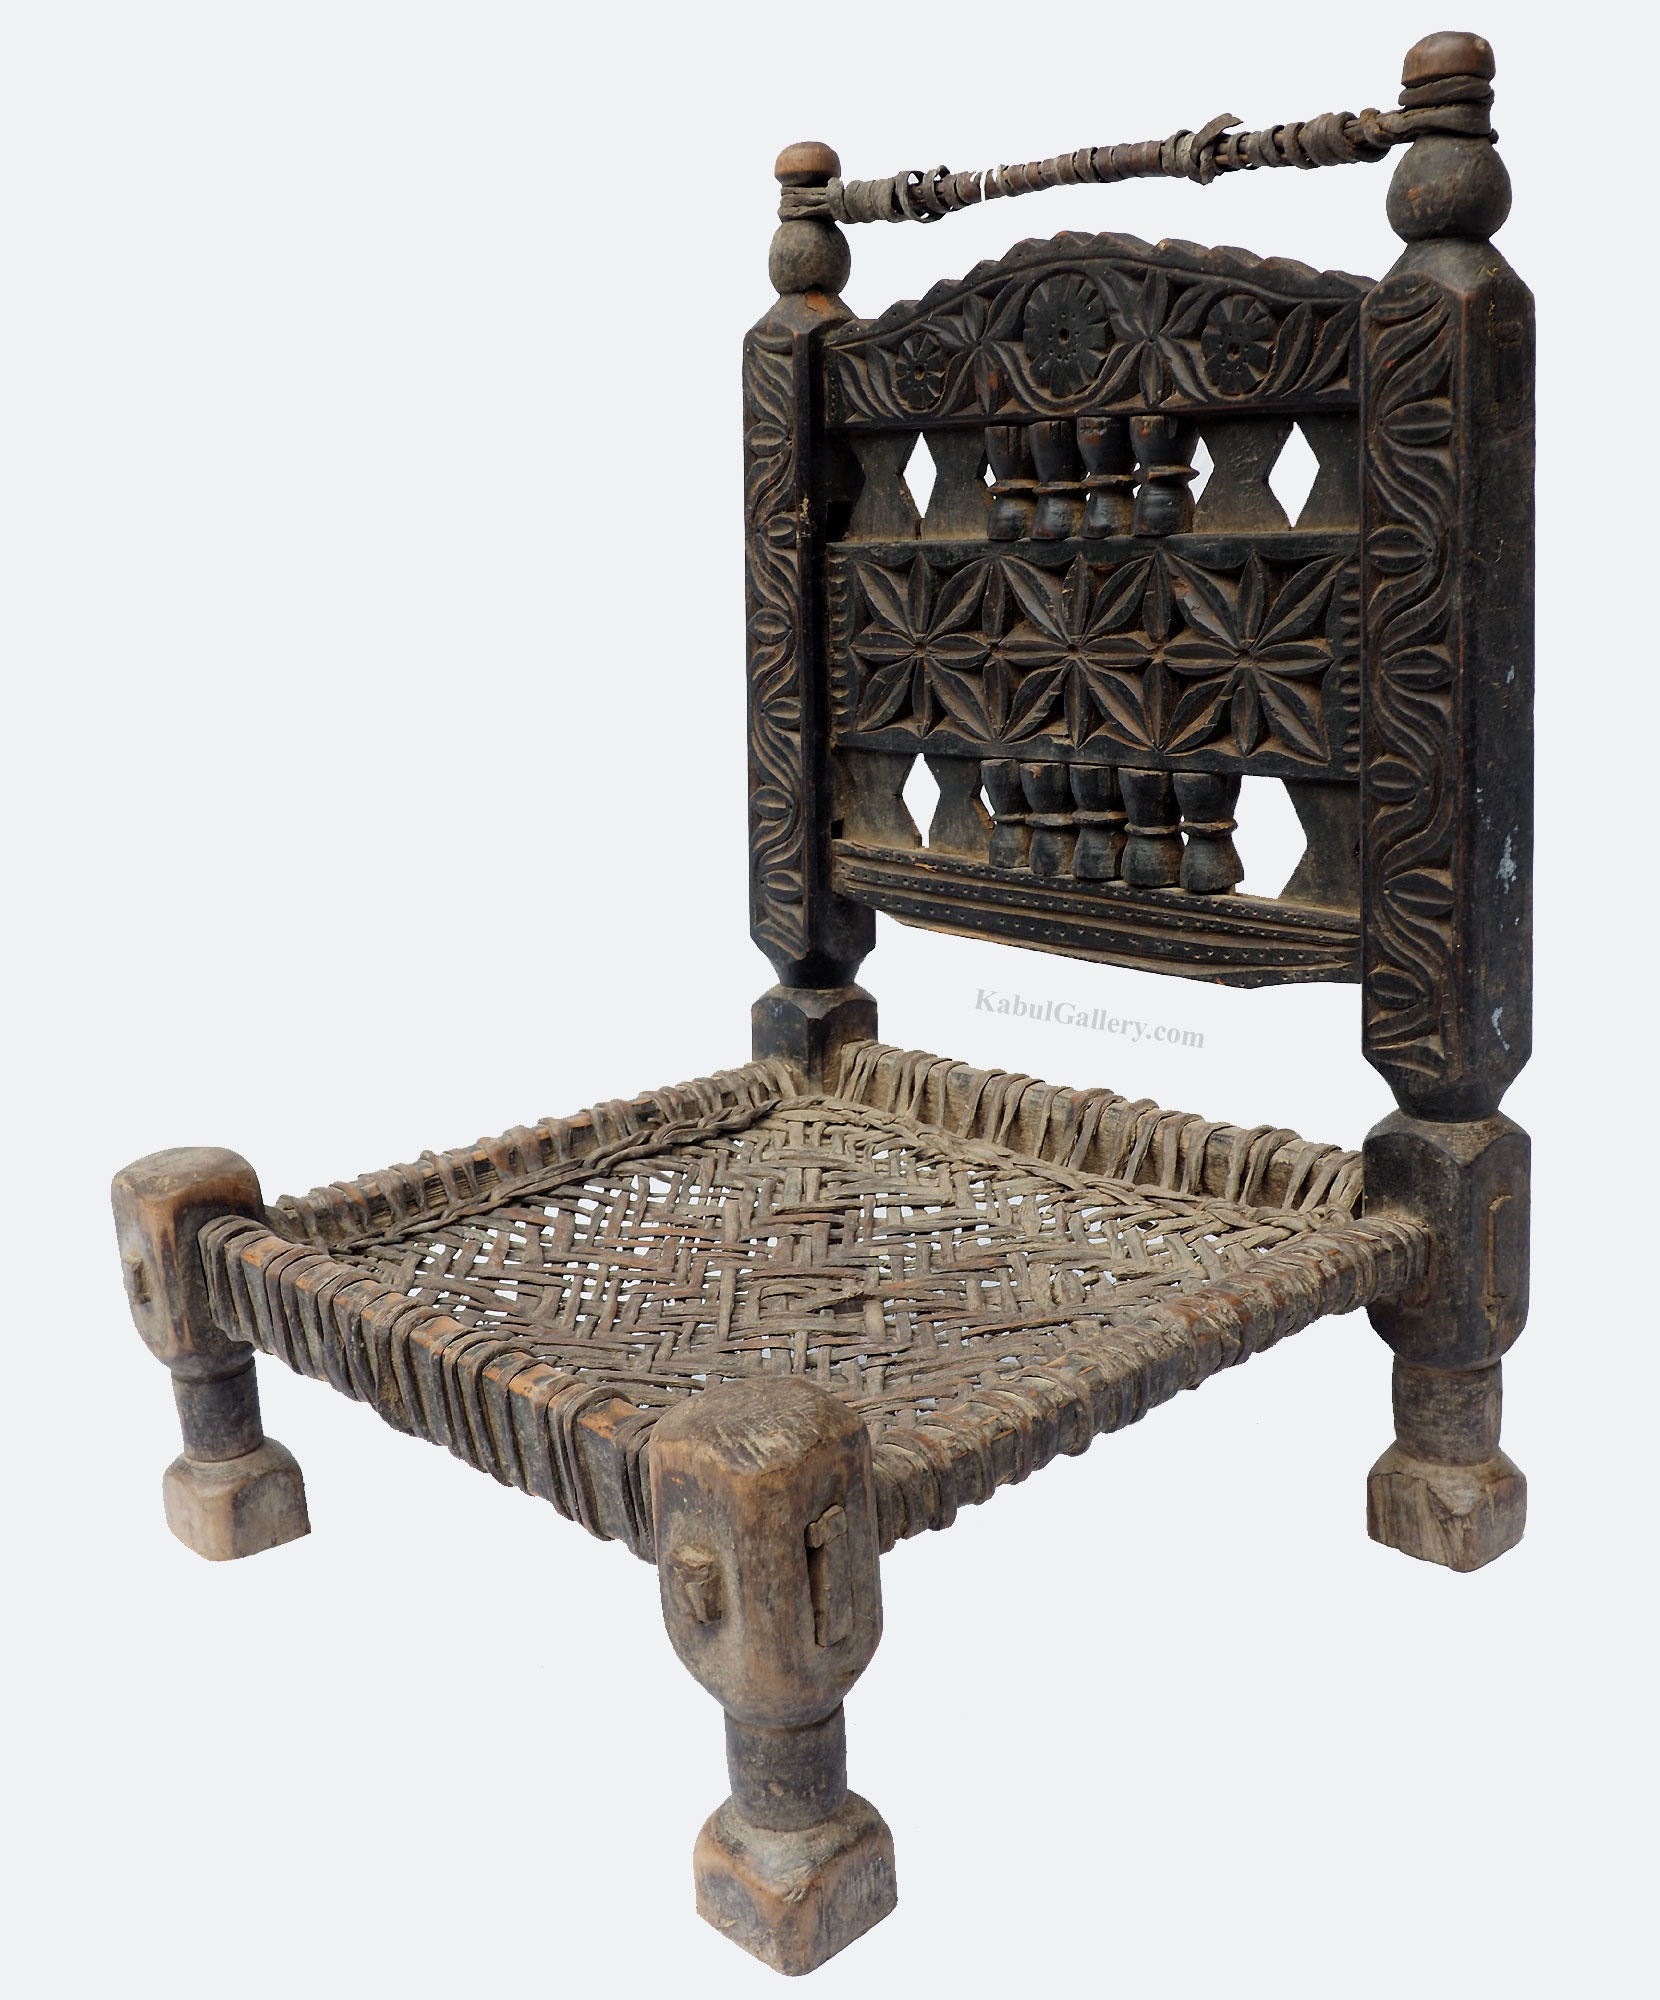 Antique Nuristan Chair Stuhl No: H